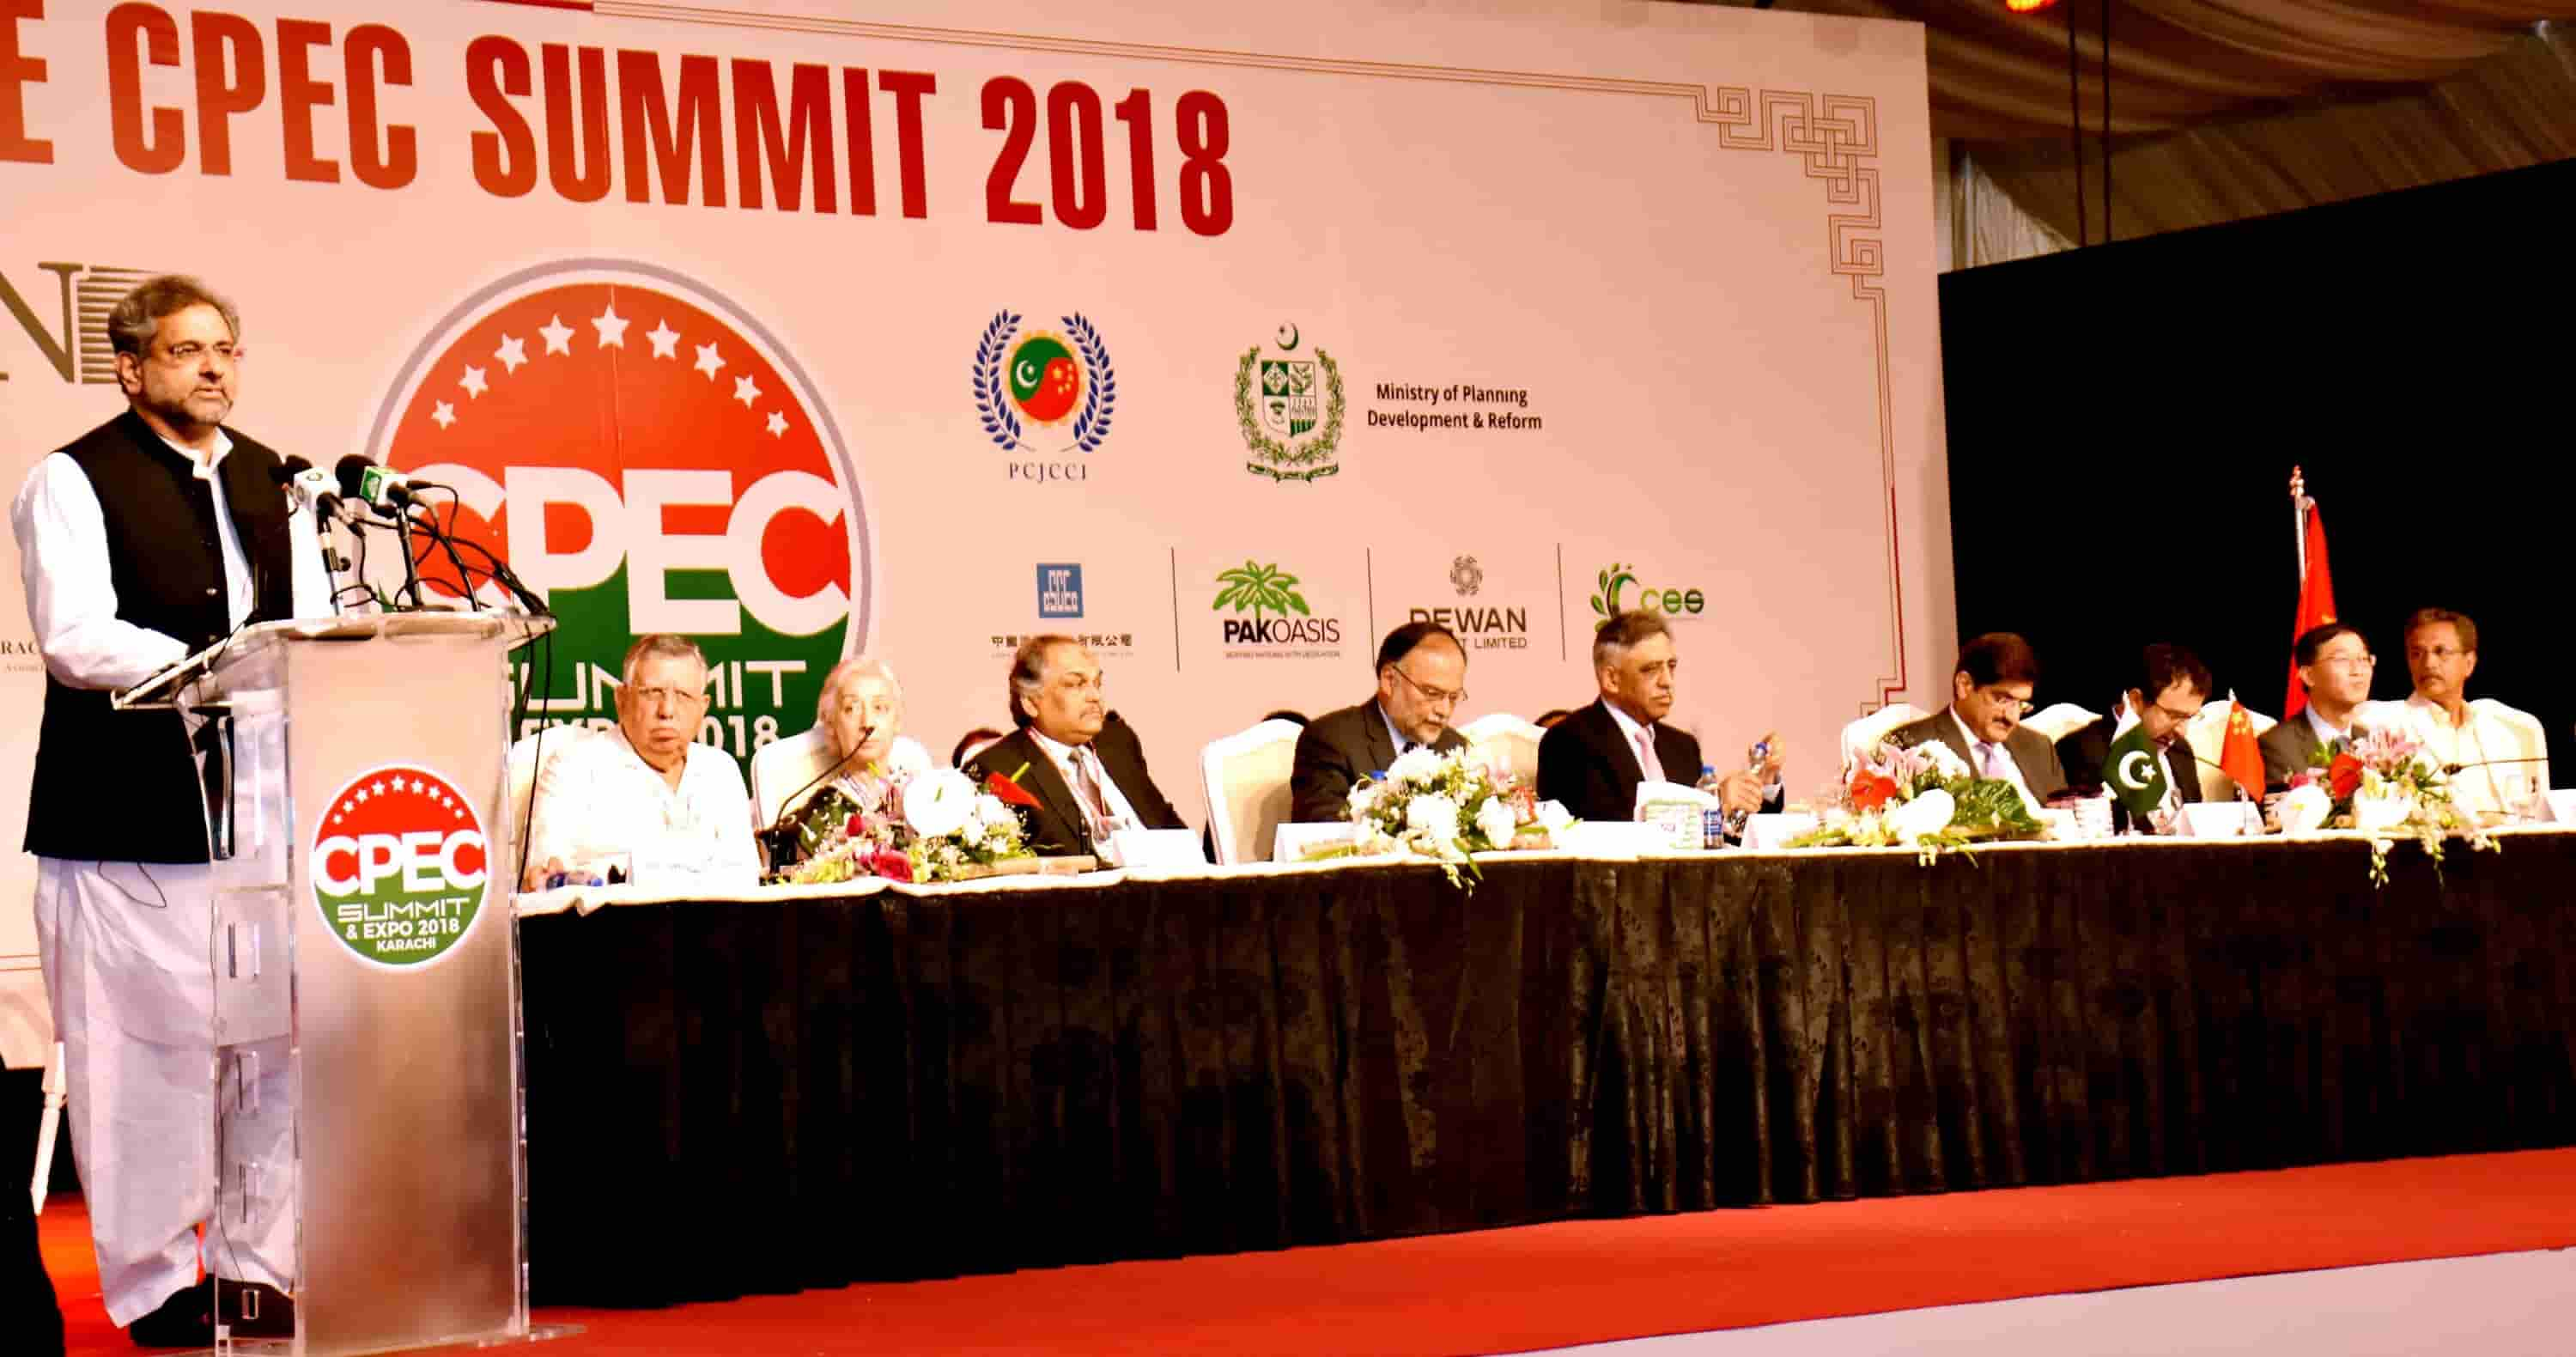 CPEC Summit and Expo at Karachi on 23-24 April 2018